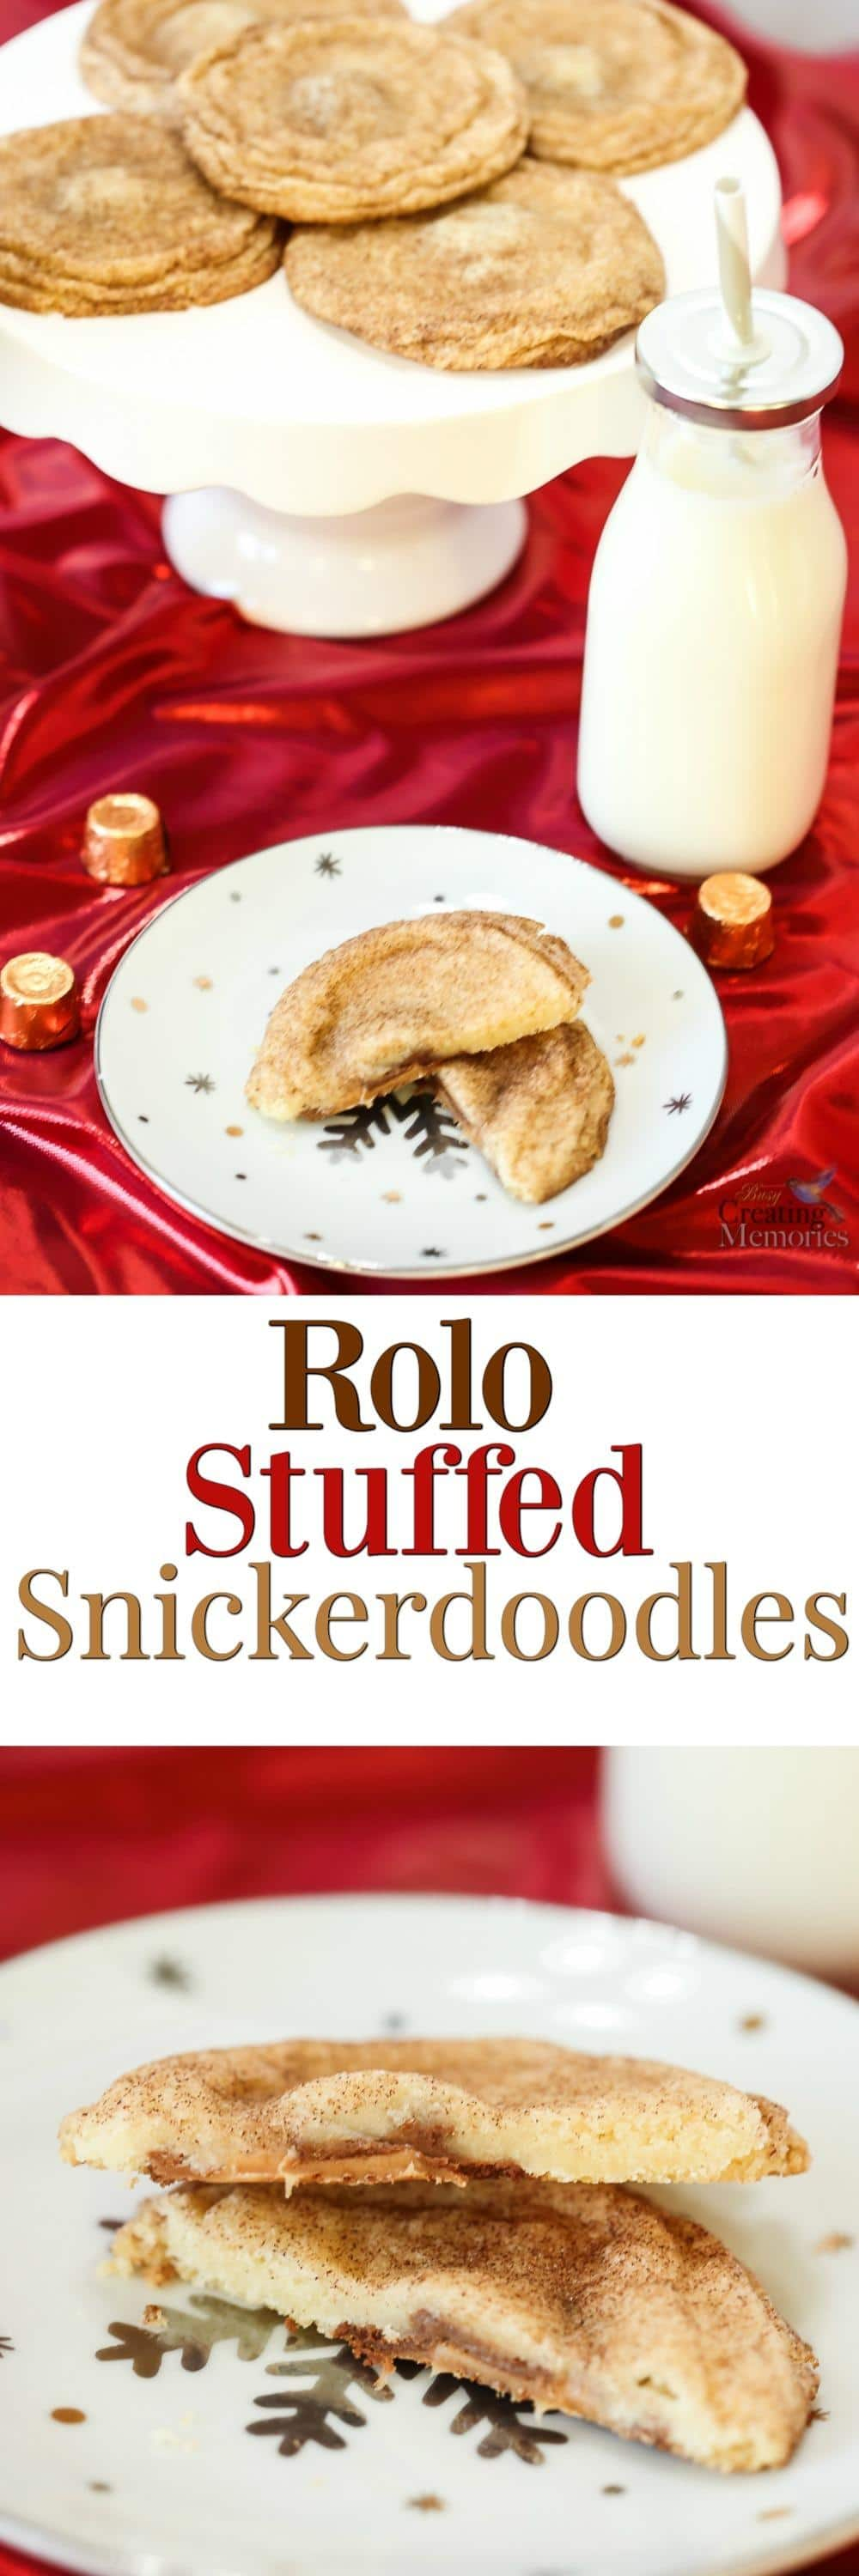 Love holiday baking but don't have the time to cook from scratch? This Holiday Baking hack gets fancy Rolo snickerdoodle cookies in a fraction of the time!